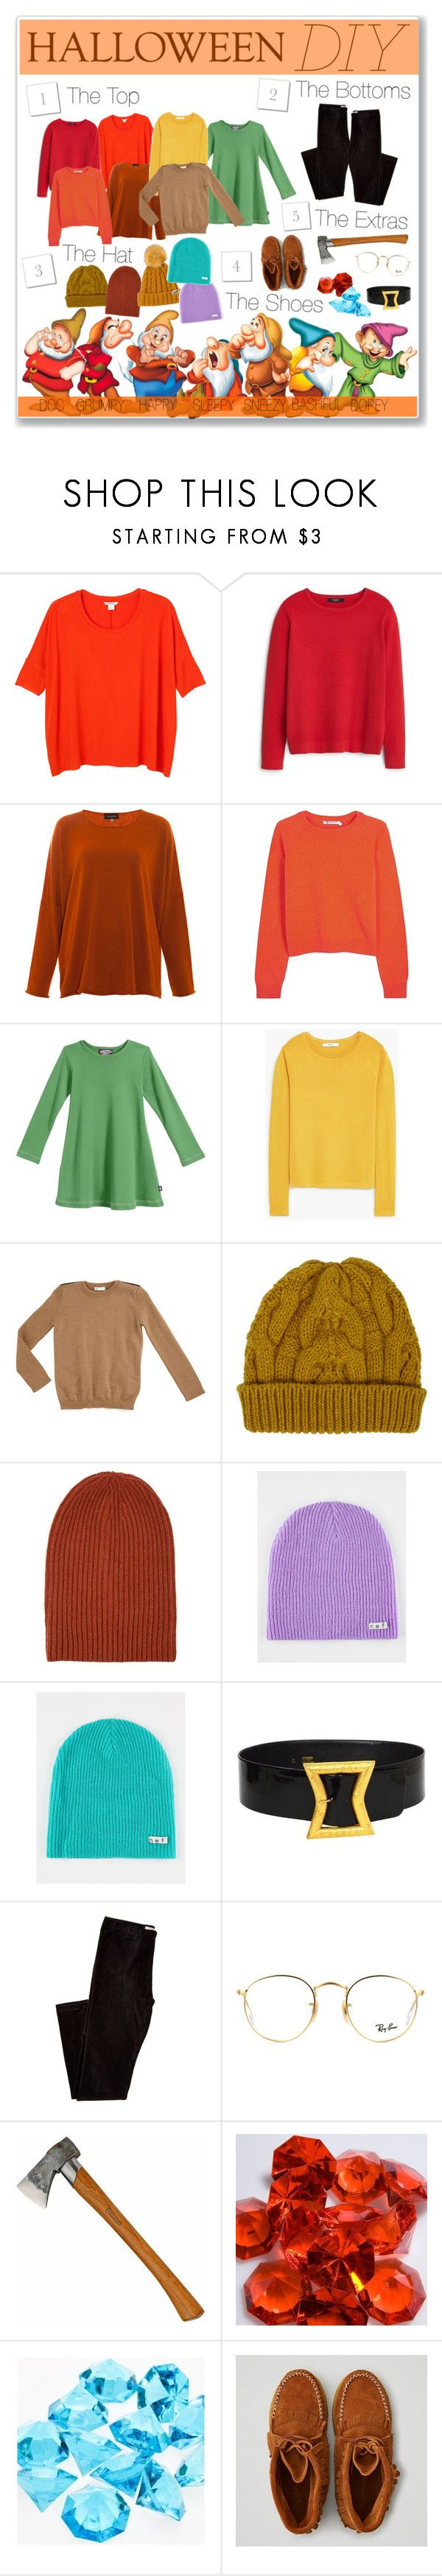 """HALLOWEEN DYI COSTUME: THE 7 DWARFS"" by undercover-martyn ❤ liked on Polyvore featuring moda, 7 For All Mankind, Monki, MANGO, Eskandar, T By Alexander Wang, Gucci, Barneys New York, Chanel e Ray-Ban"